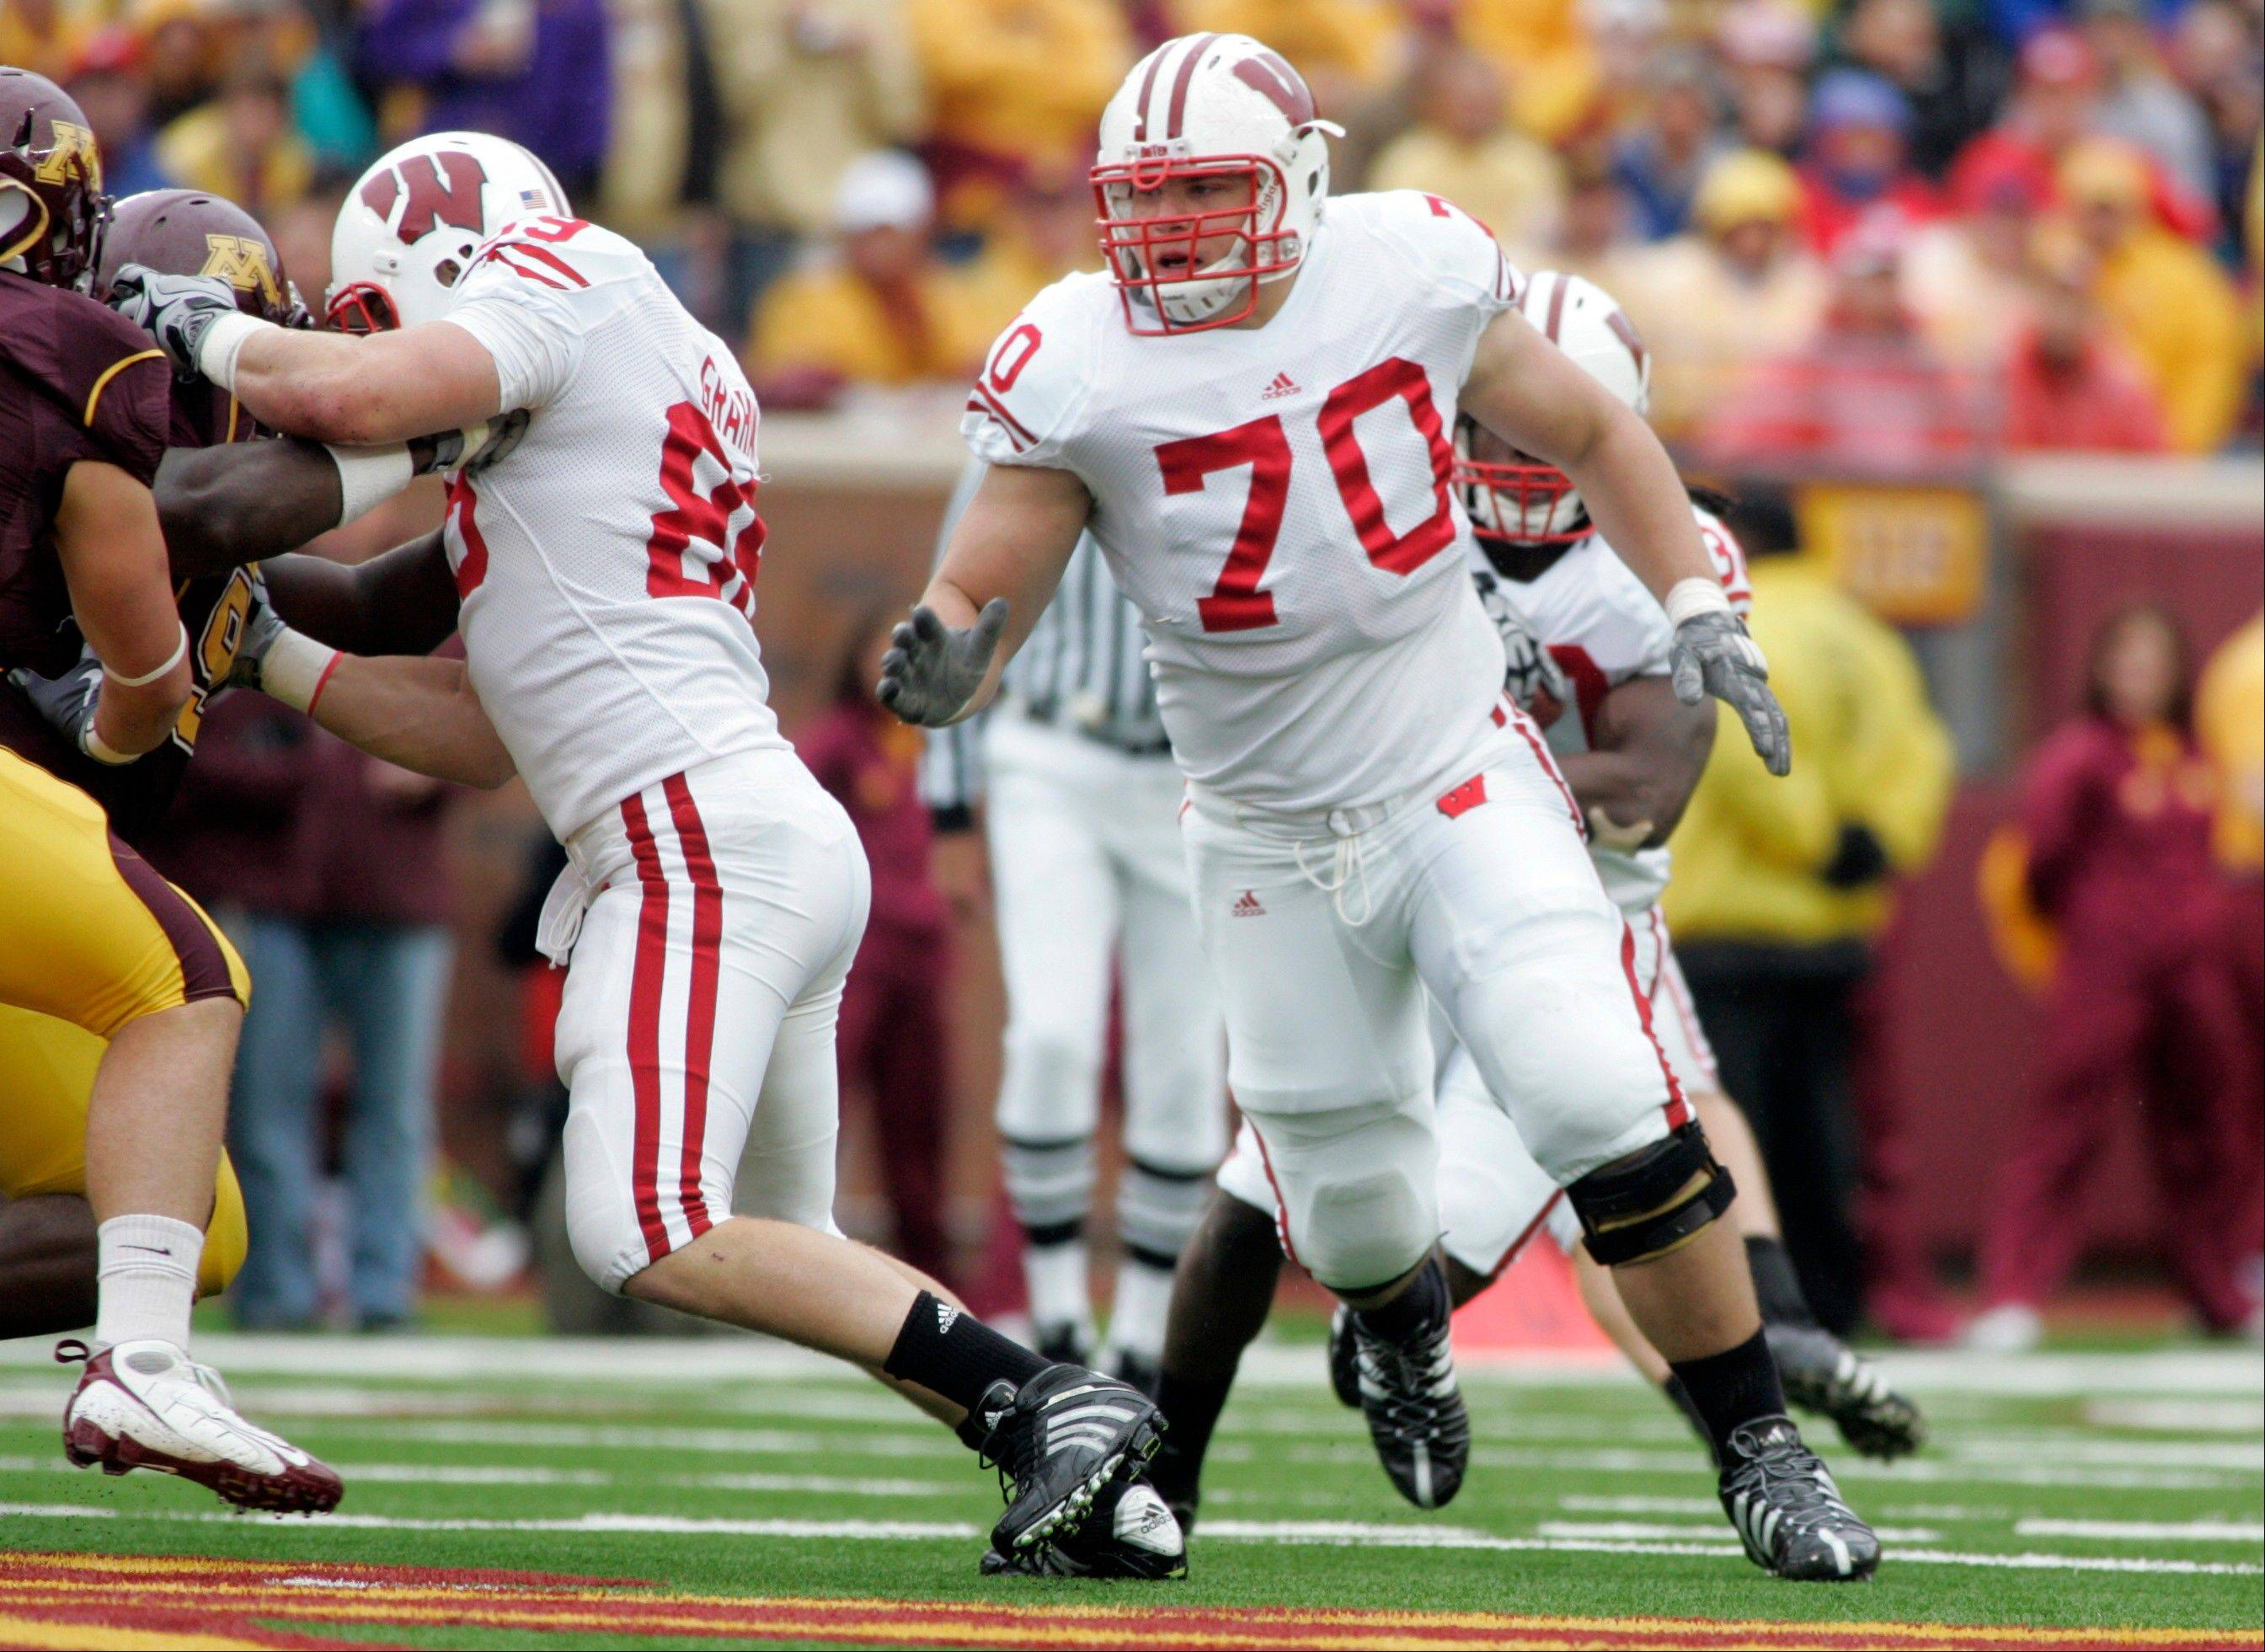 Wisconsin offensive lineman Kevin Zeitler was selected as the 27th pick overall by the Cincinnati Bengals in the first round of the NFL Draft at Radio City Music Hall.